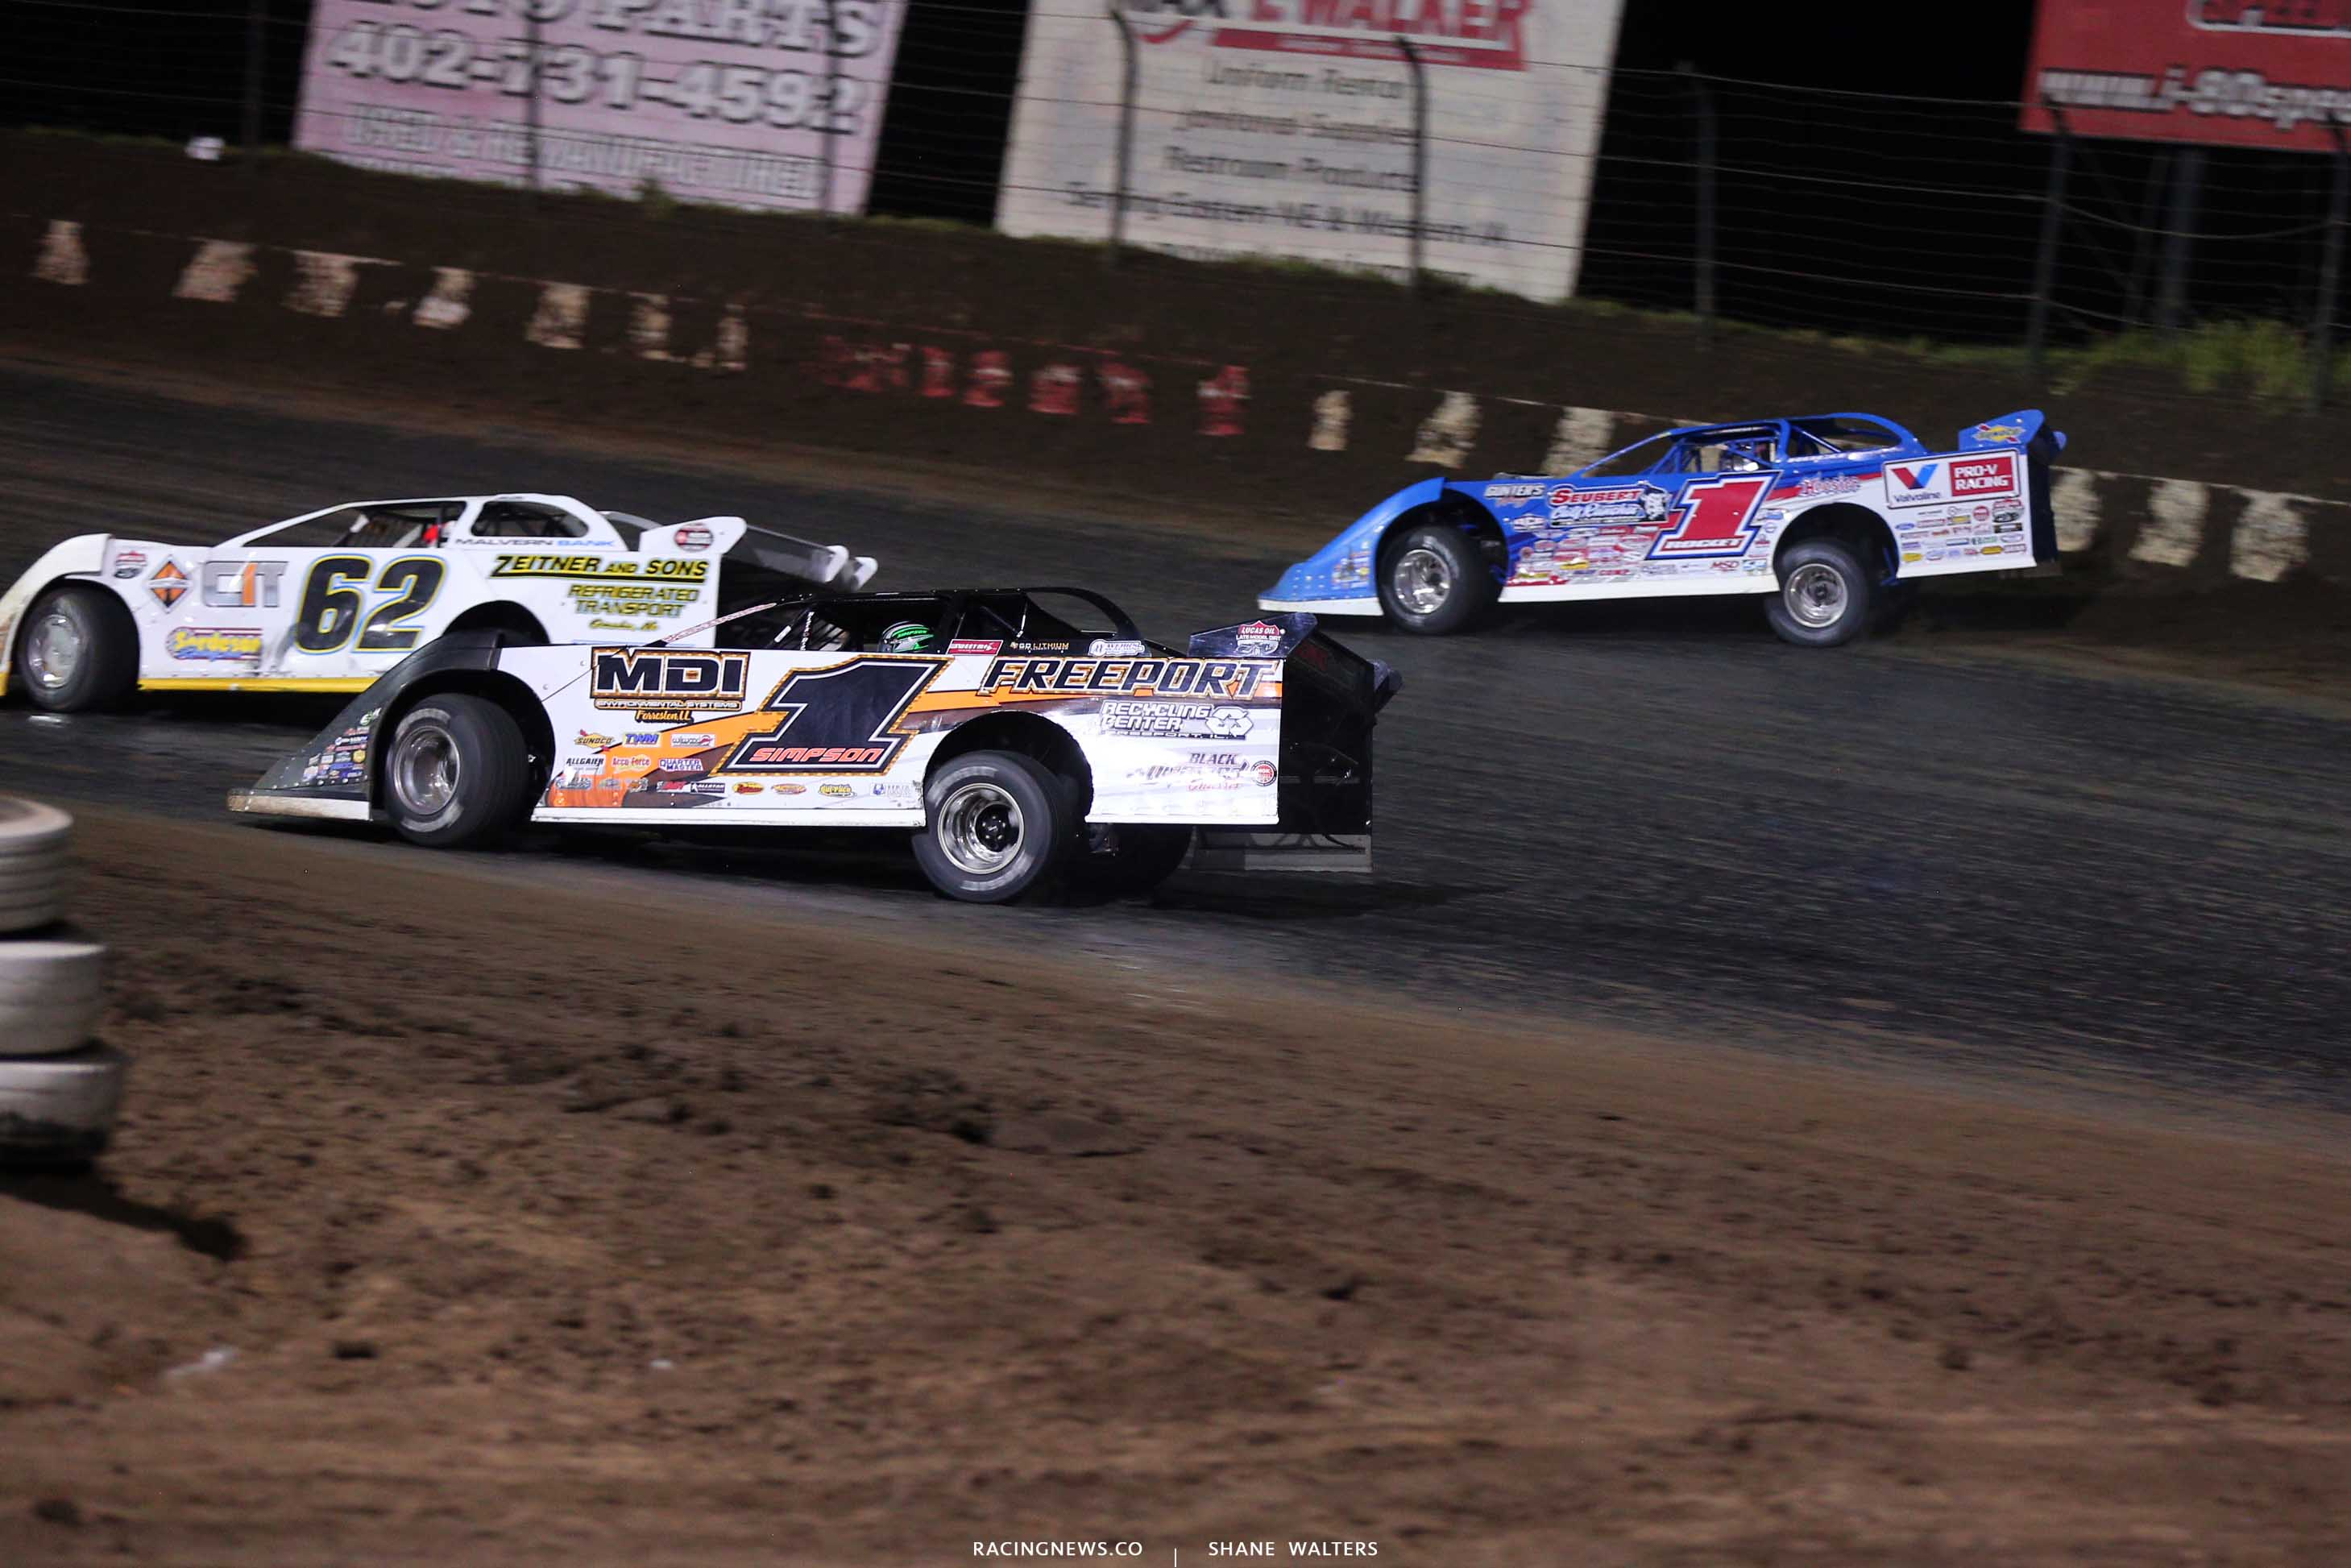 Chad SImpson and Brandon Sheppard in the Silver Dollar Nationals at I-80 Speedway - Dirt Track Racing 0526